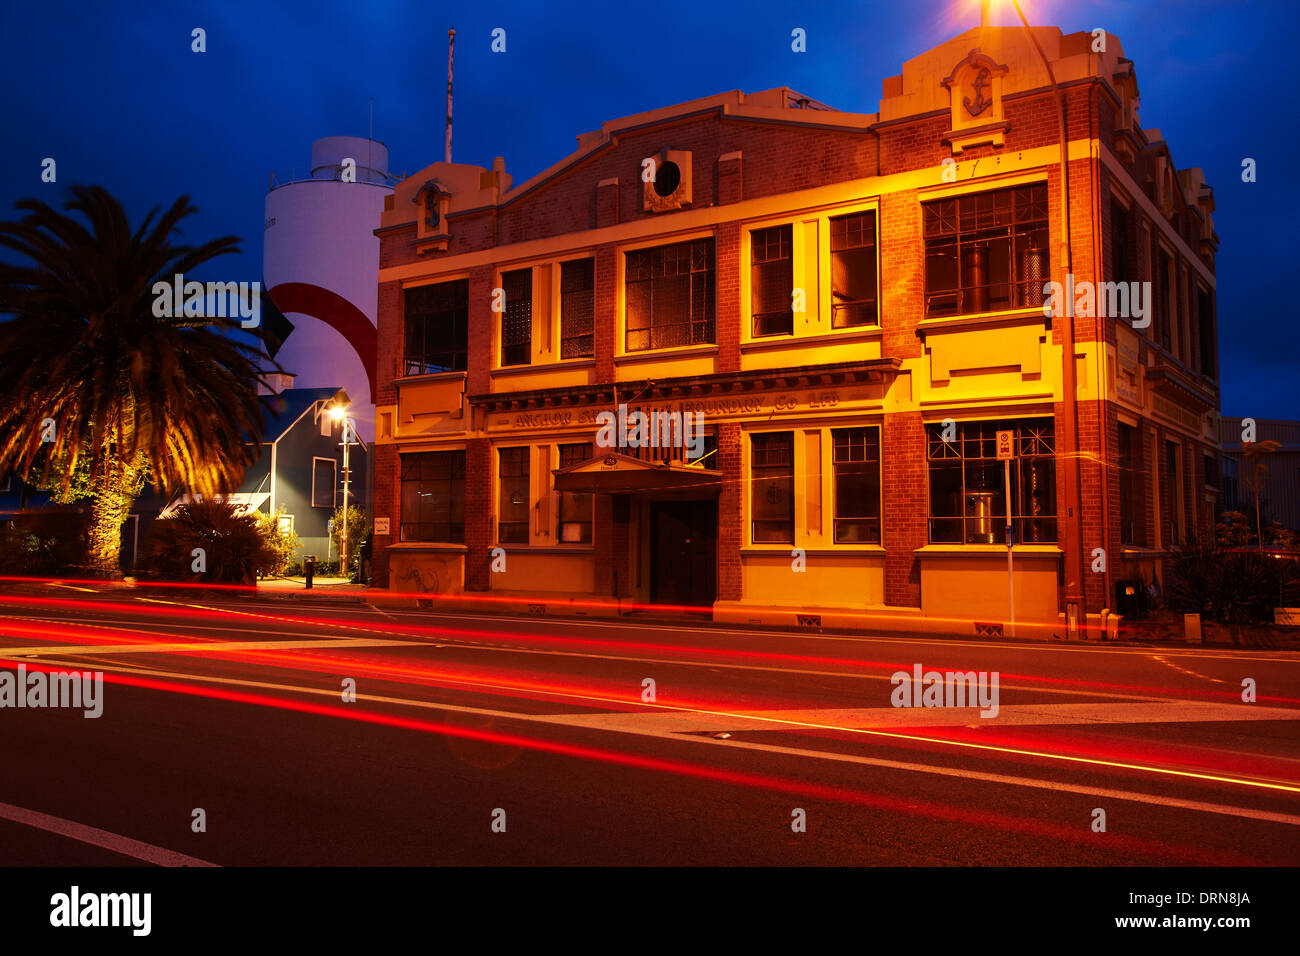 Historic Anchor Shipping & Foundry Building, Wakefield Quay, Nelson, South Island, New Zealand - Stock Image